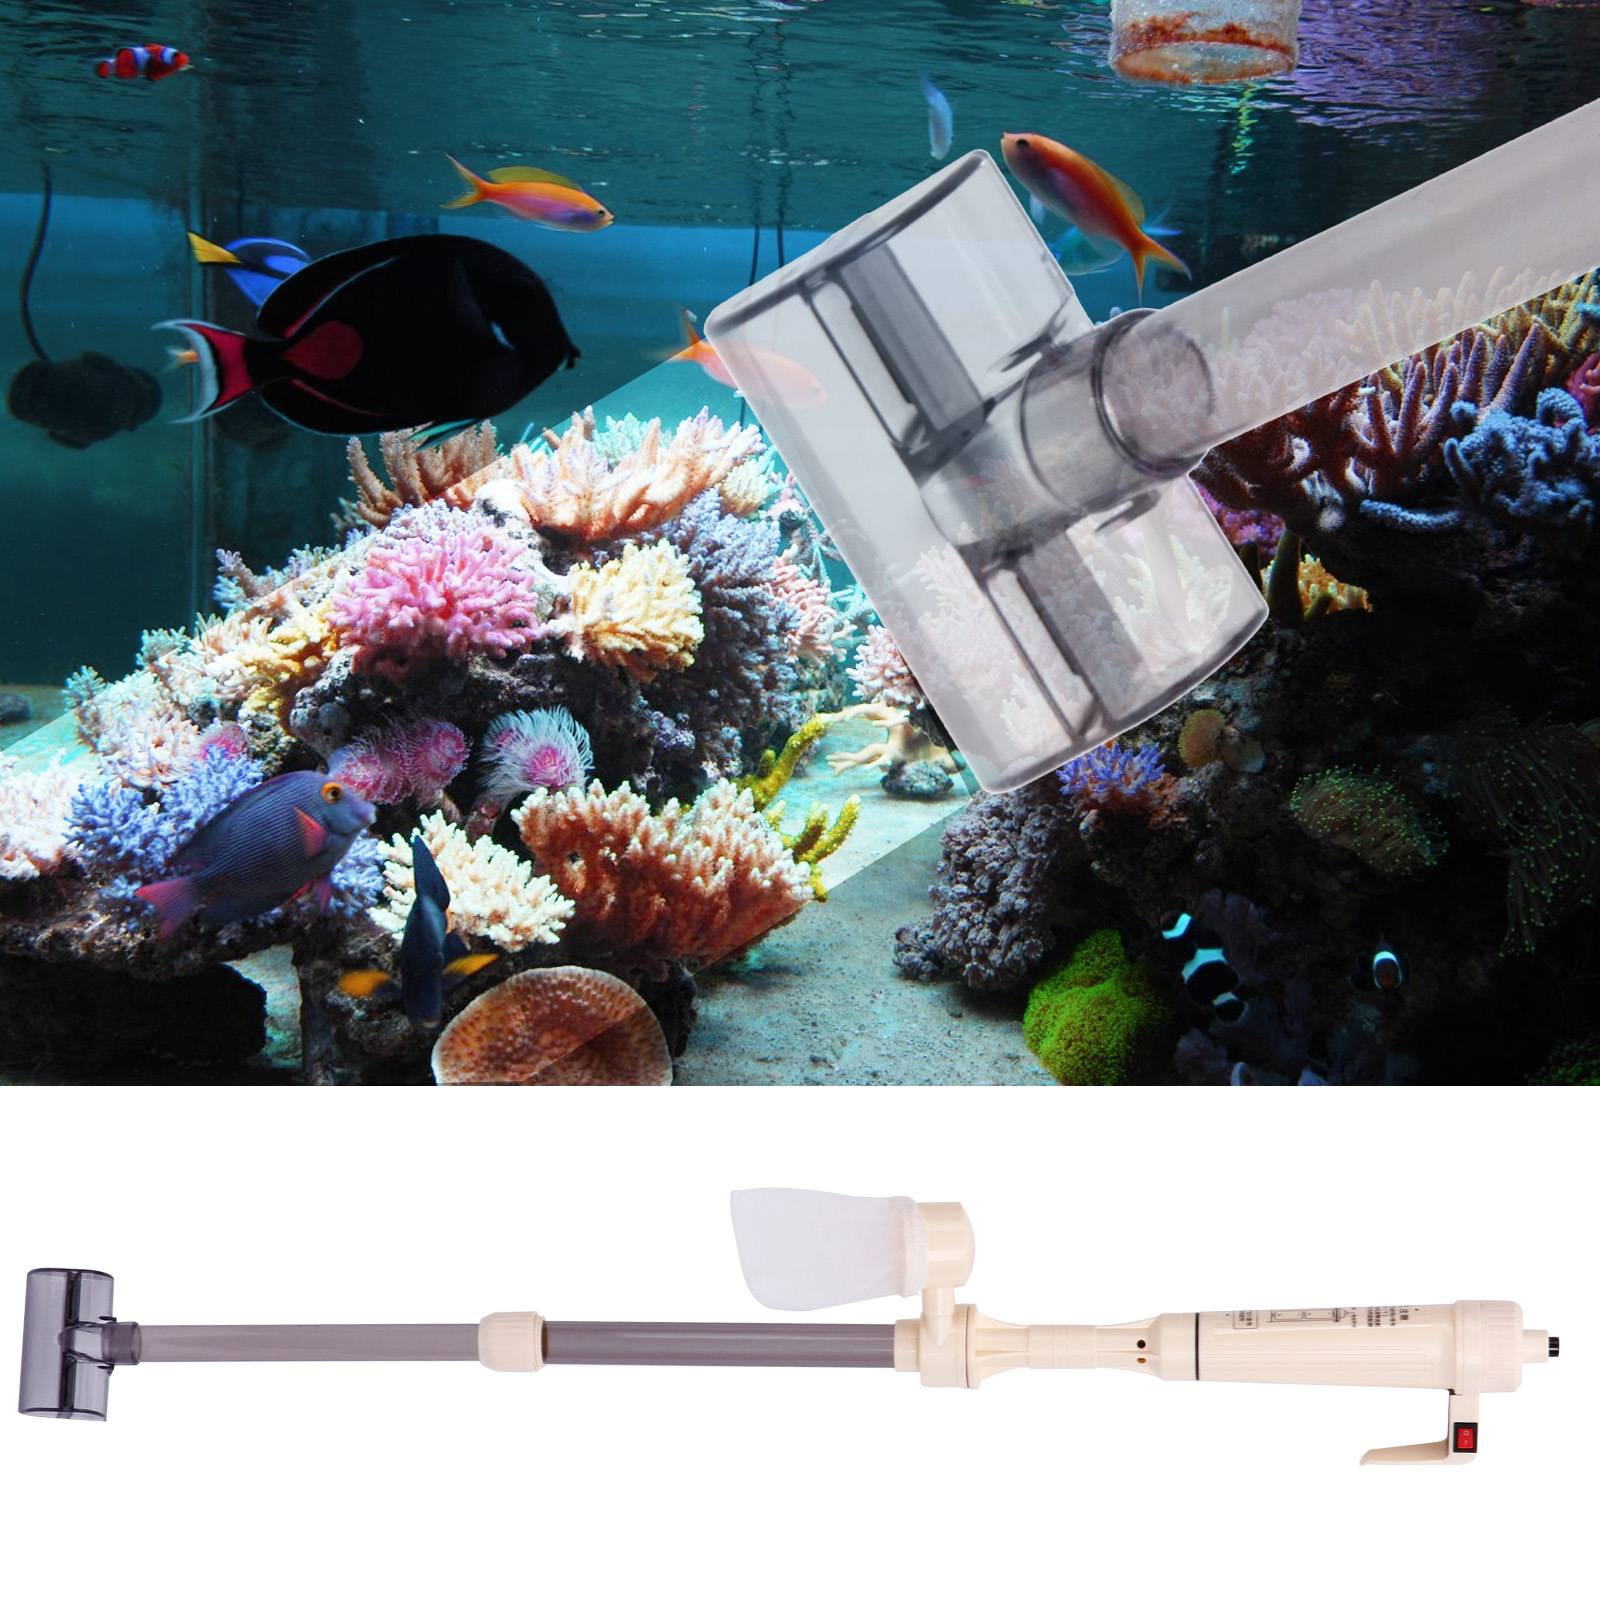 Aquarium fish tank battery vacuum syphon cleaner - Home Aquarium Gravel Battery Fish Tank Vacuum Syphon Cleaner Pump Water